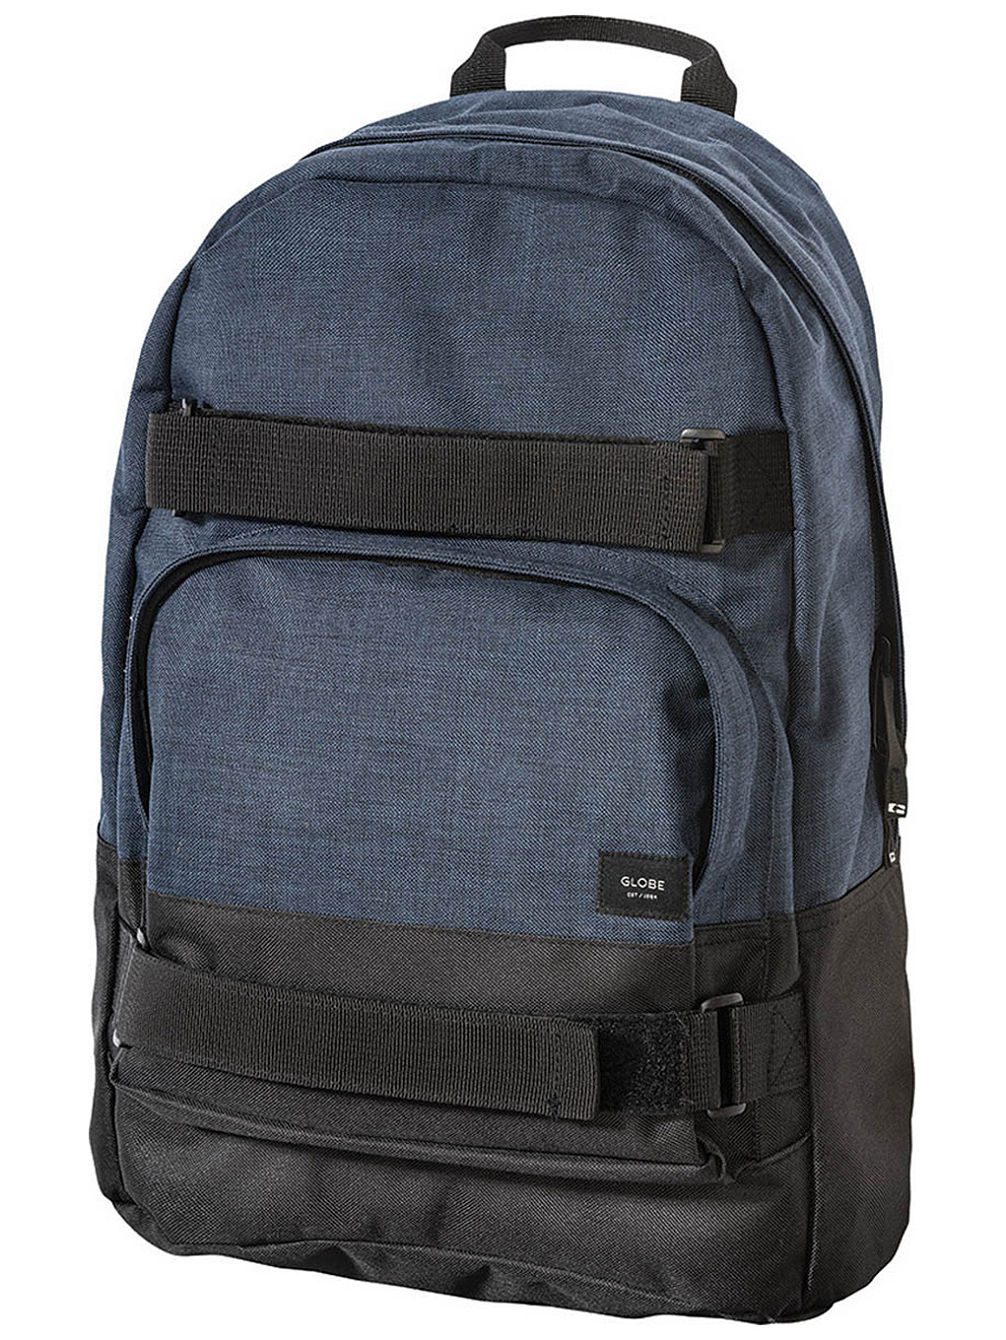 Thurston Backpack